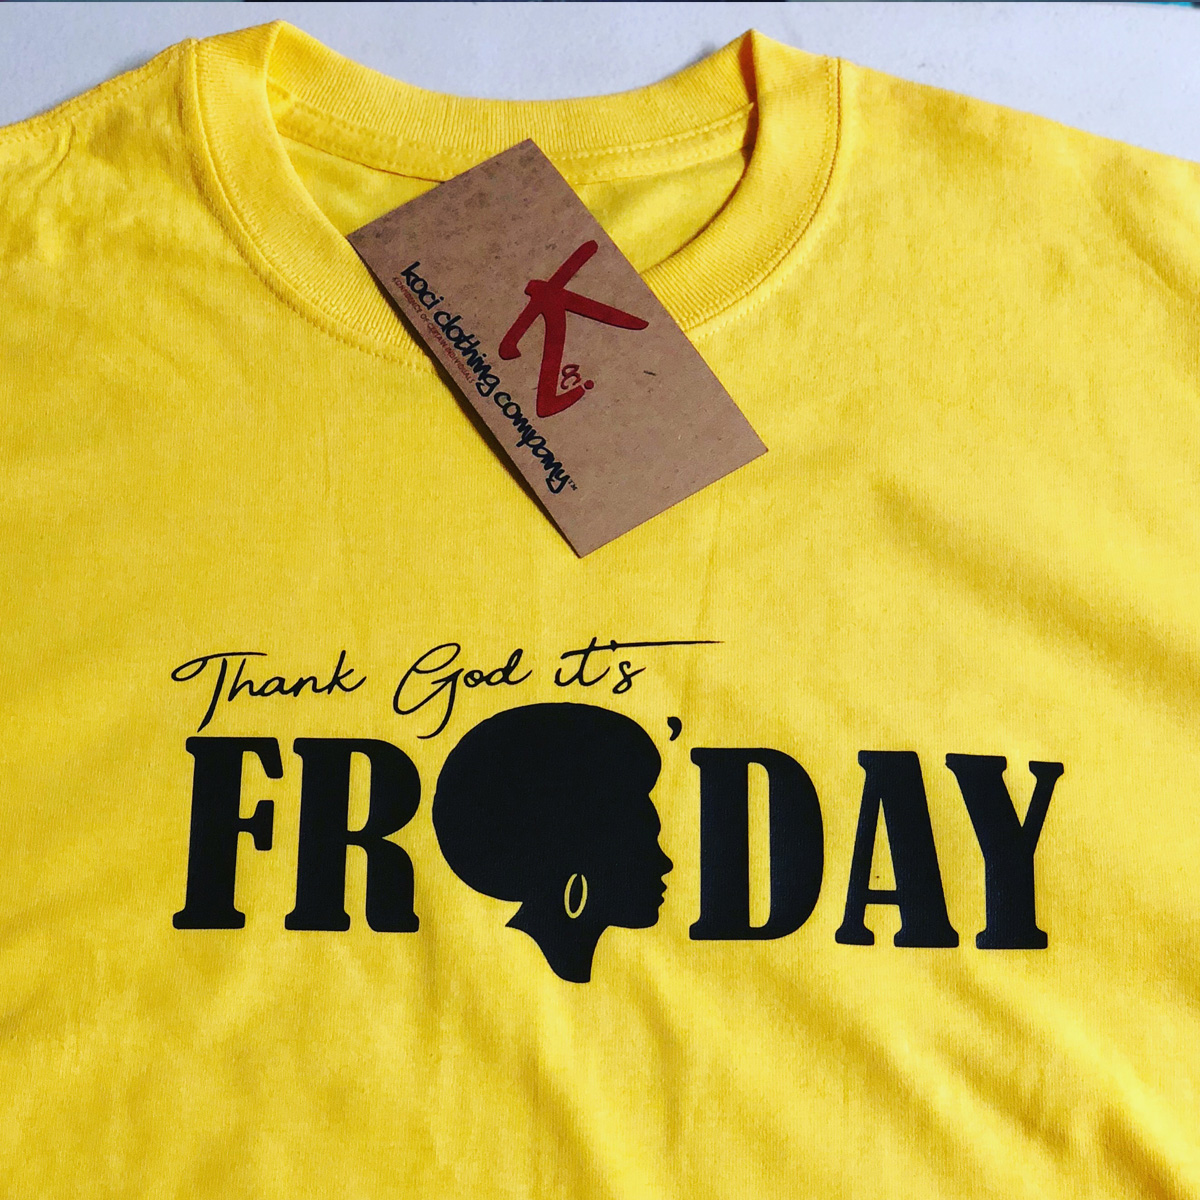 FRO'DAY